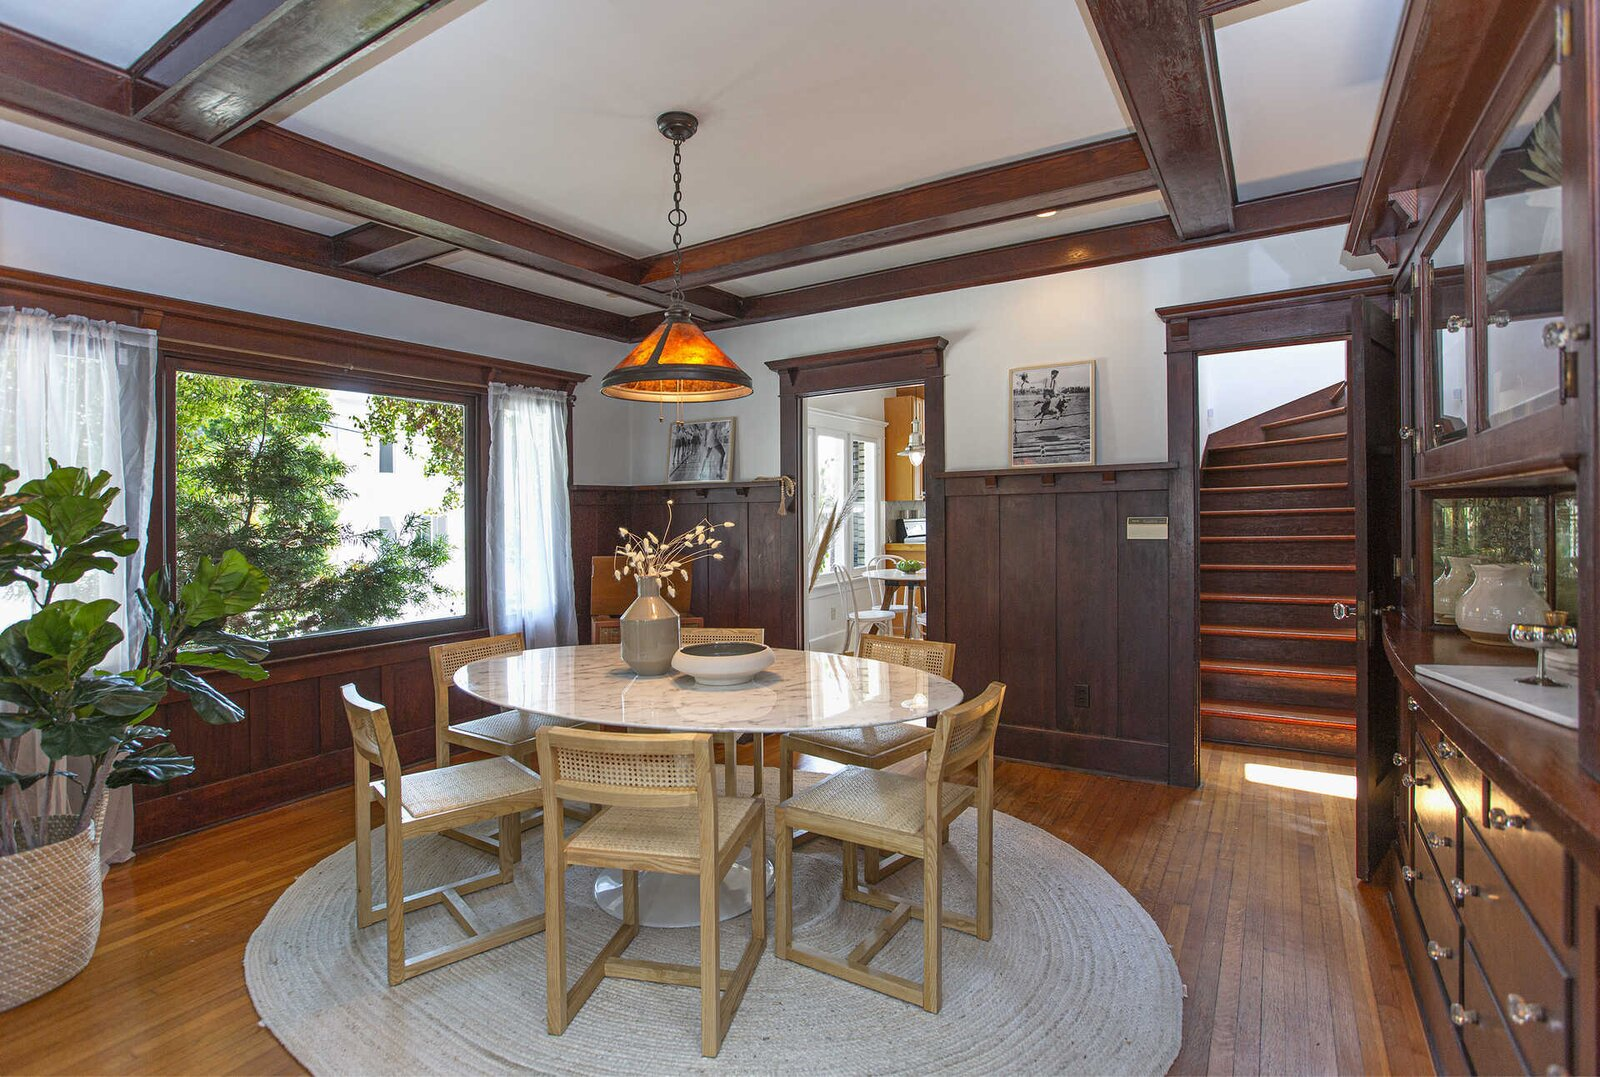 """The dining area offers continues with Craftsman-style features—including a built-in china cabinet and wainscoting. Forte and his colleagues often spent time in the space writing scrips for the movie, MacGruber, and TV series, <span style=""""font-family: Theinhardt, -apple-system, BlinkMacSystemFont, &quot;Segoe UI&quot;, Roboto, Oxygen-Sans, Ubuntu, Cantarell, &quot;Helvetica Neue&quot;, sans-serif;"""">The Last Man on Earth.</span>  Photo 5 of 14 in """"Last Man on Earth"""" Creator Will Forte Puts His Santa Monica Craftsman on the Market for $2.45M"""